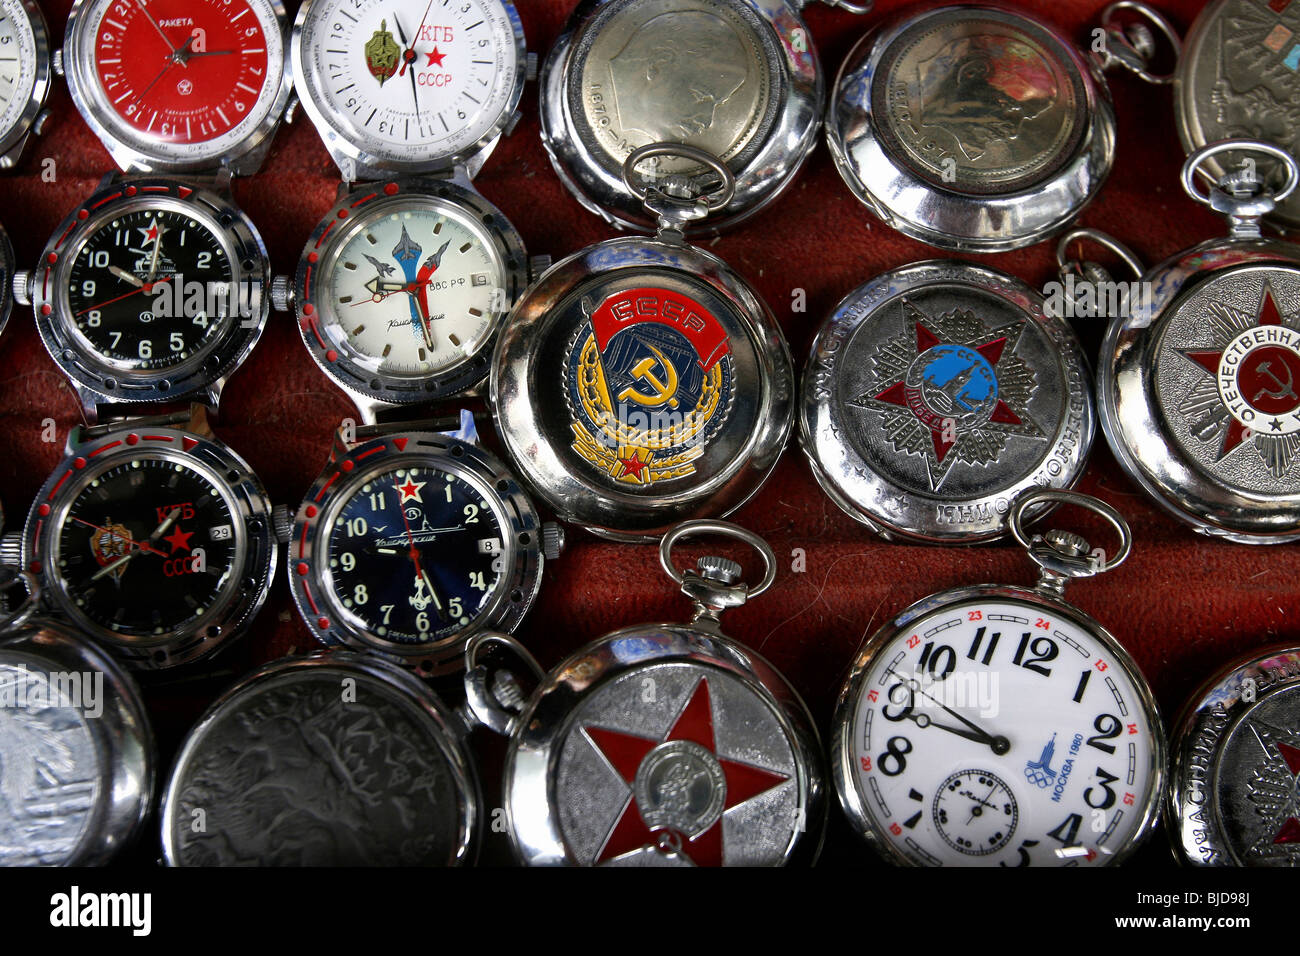 USSR watches - Stock Image